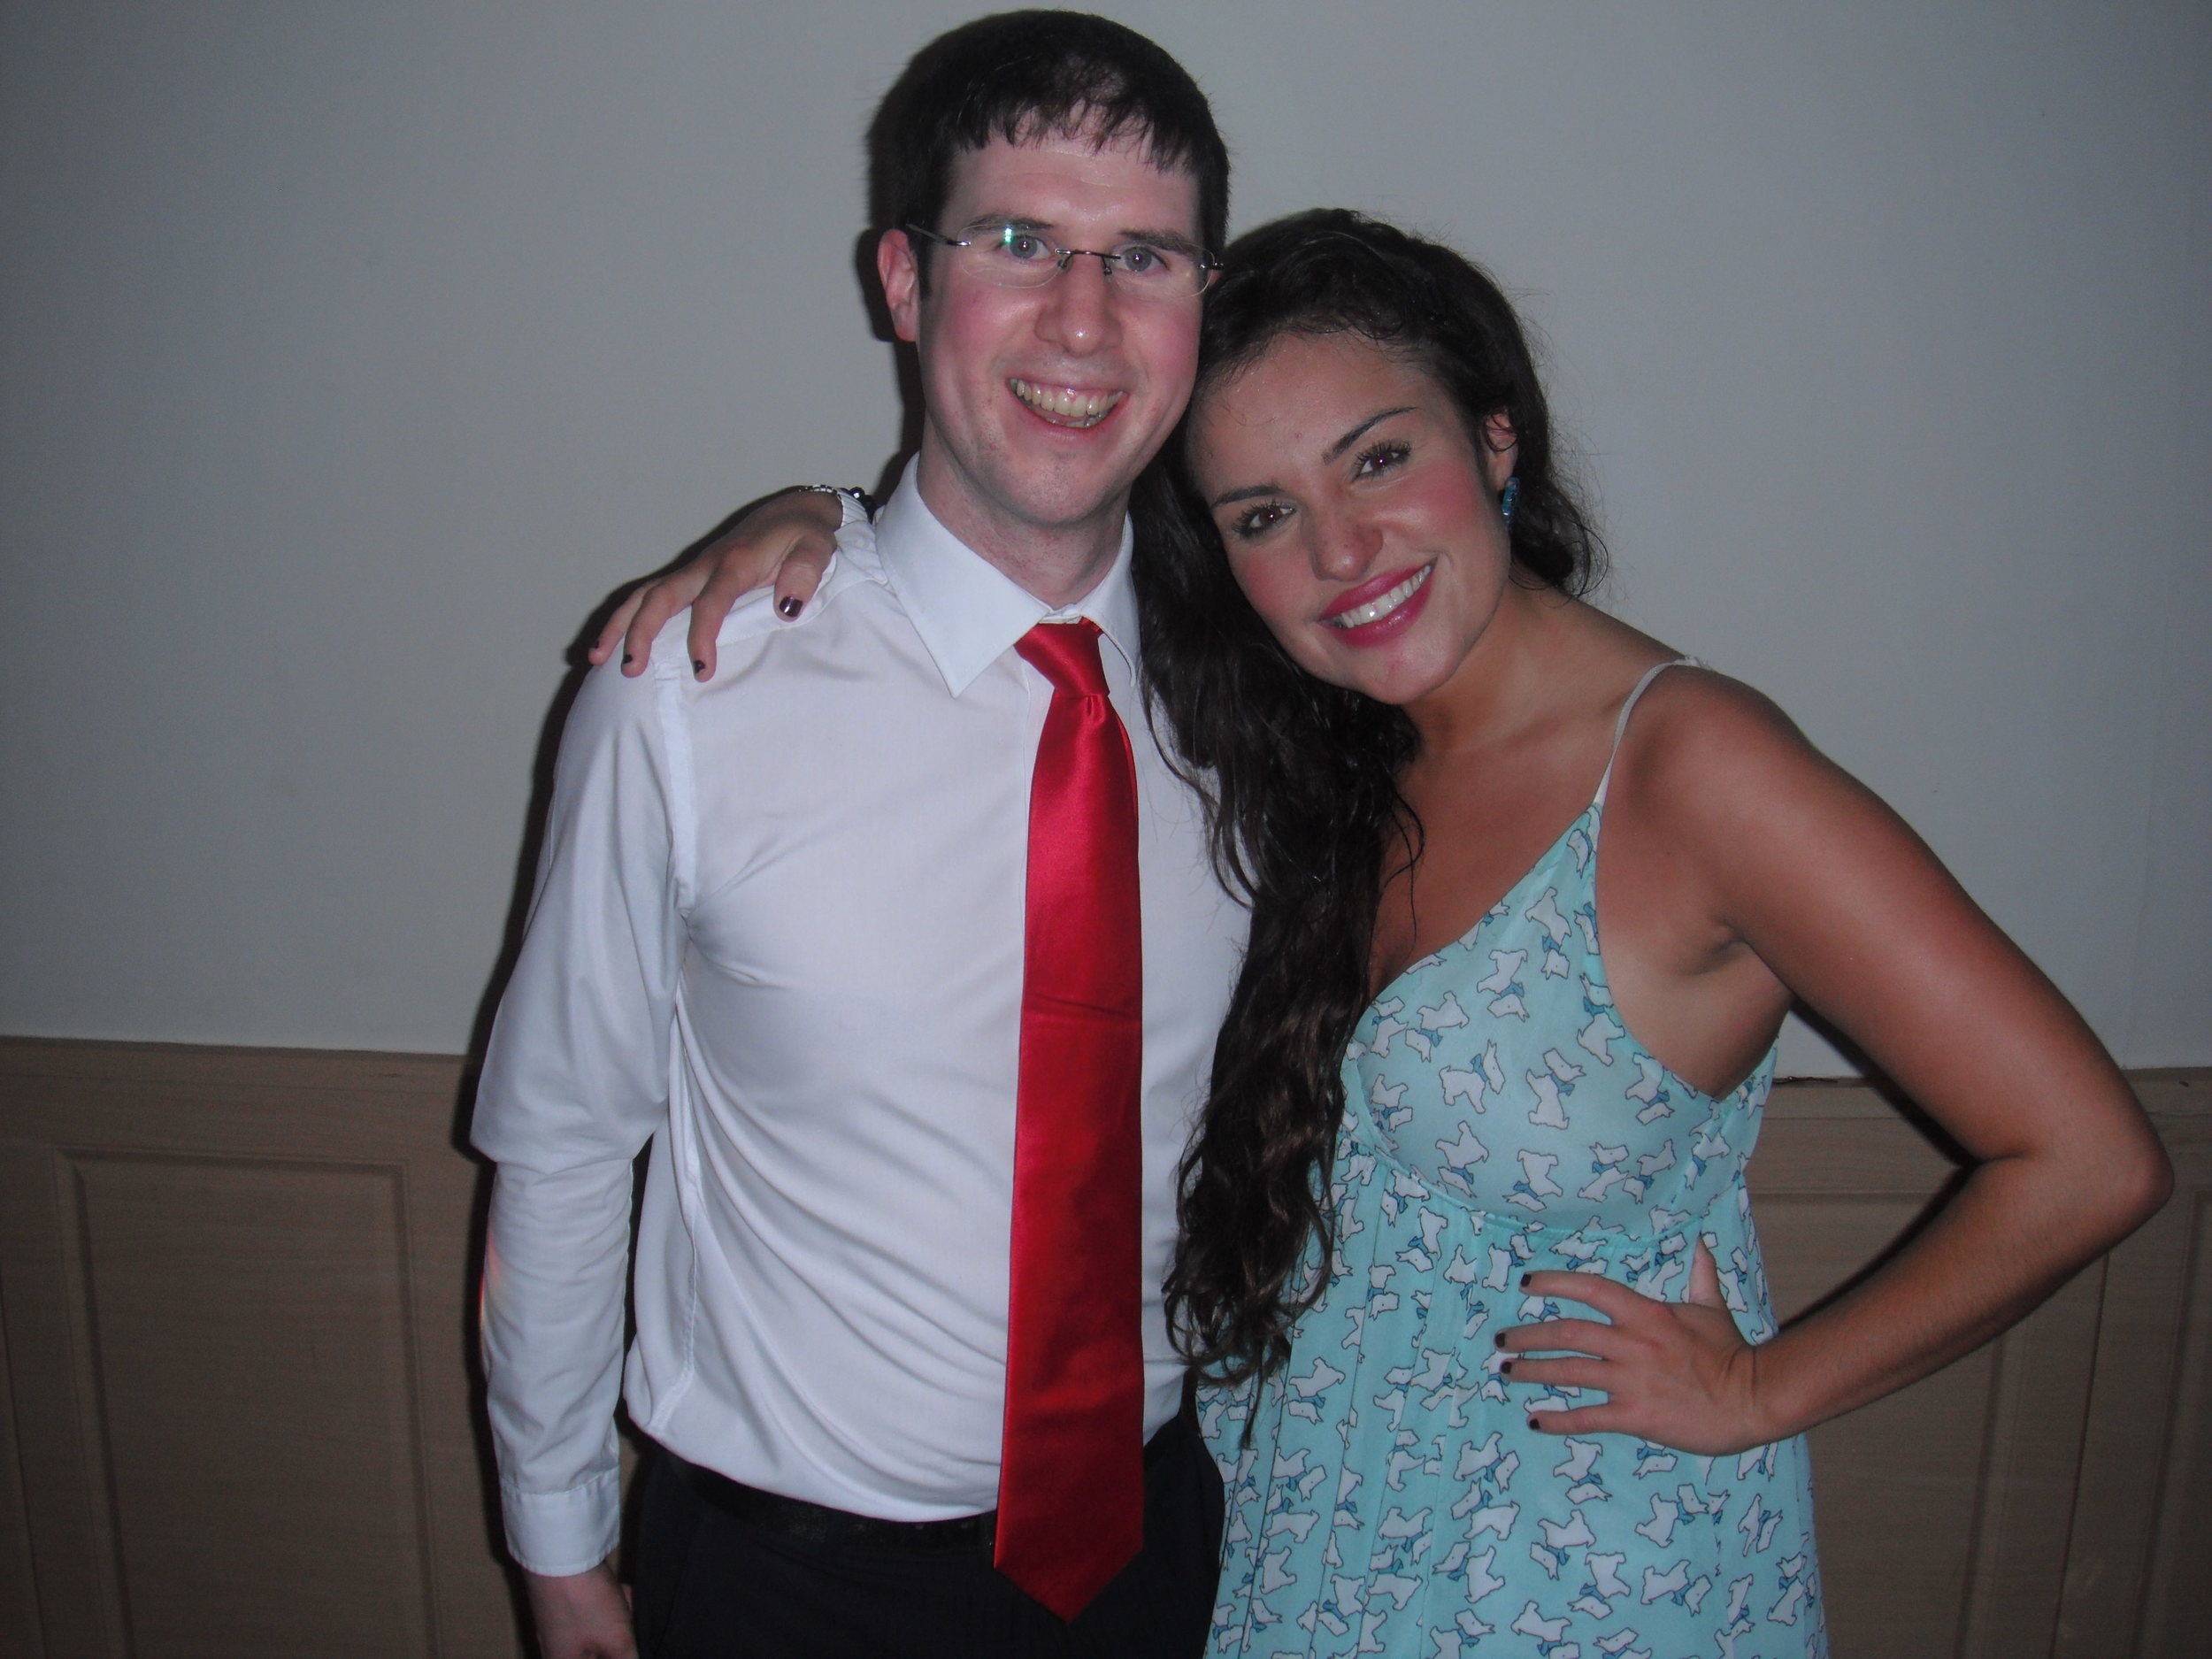 Smitten looking Adam Carr with Laura White from The X Factor at a Wedding in Wales taken after sound check.